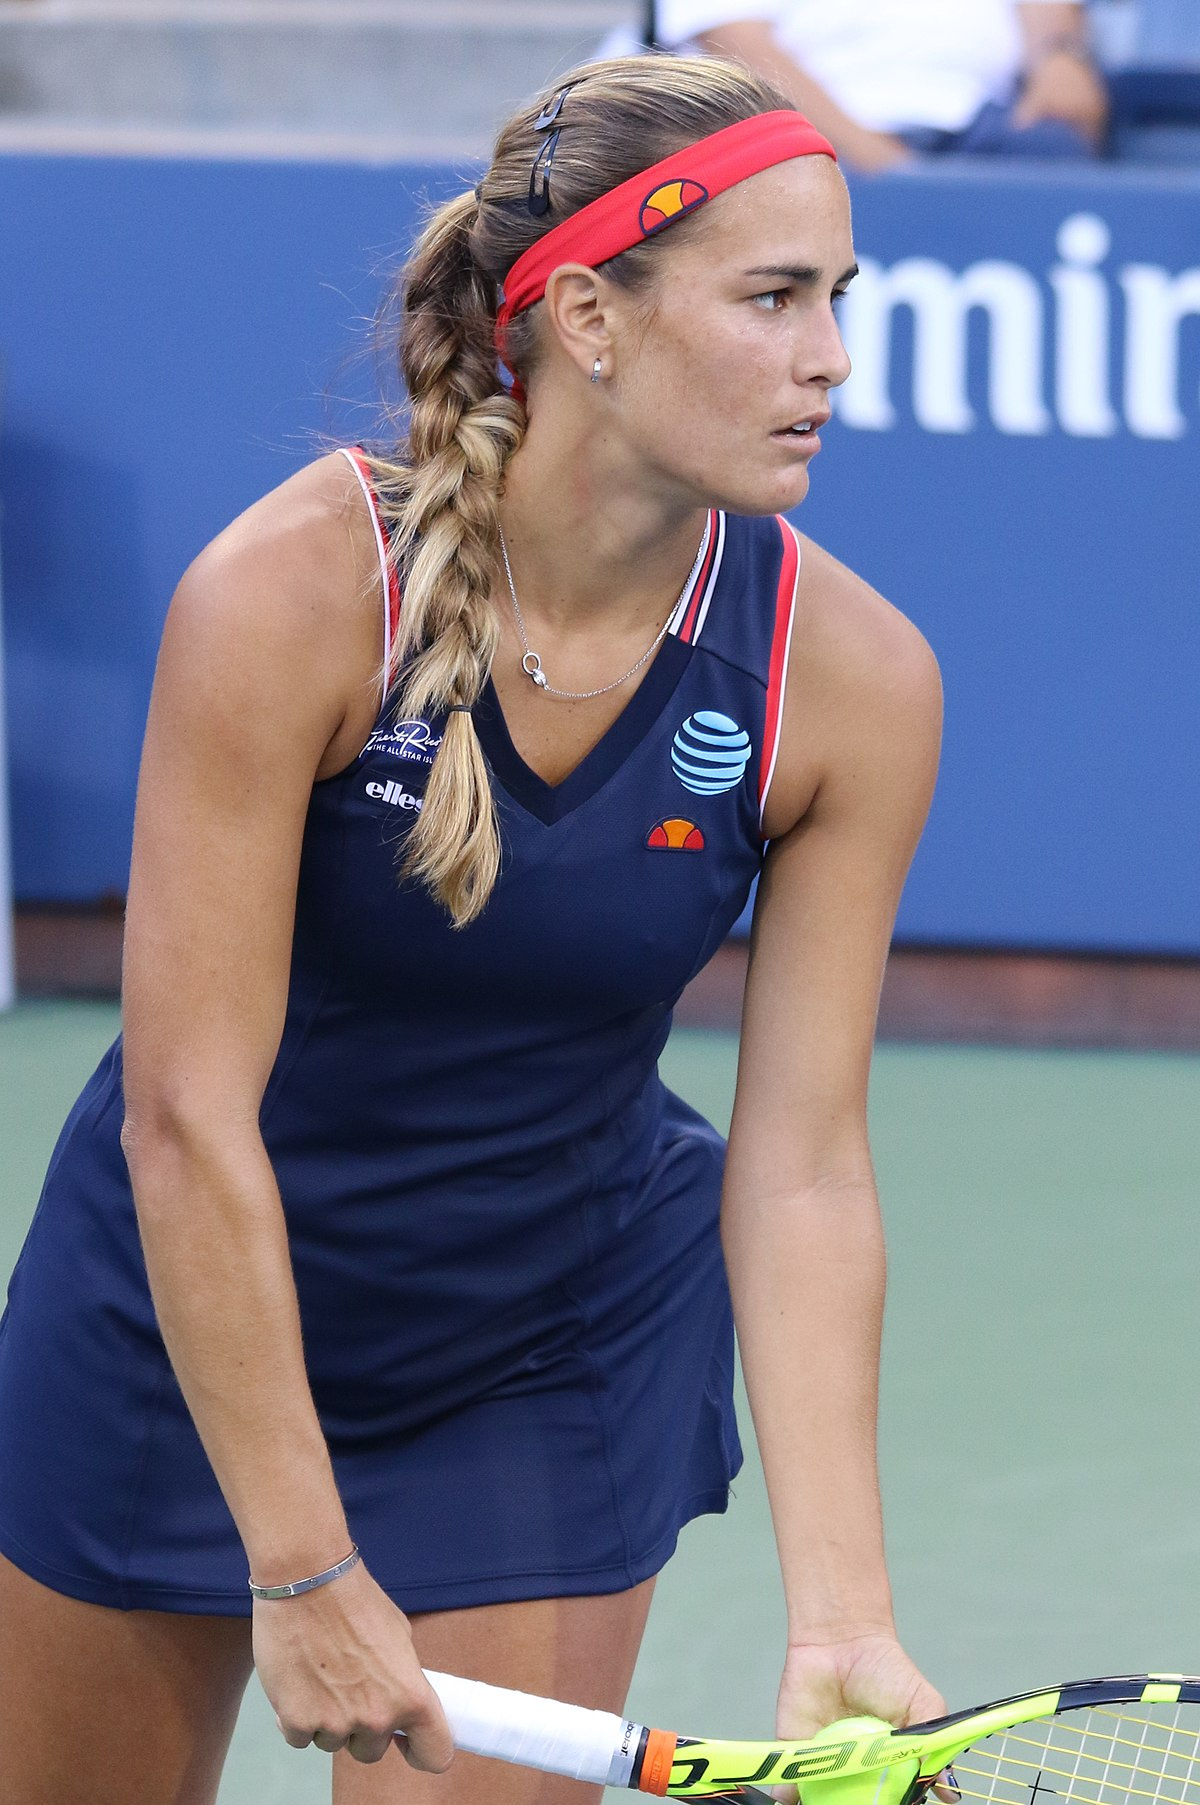 Tennis Monica Puig